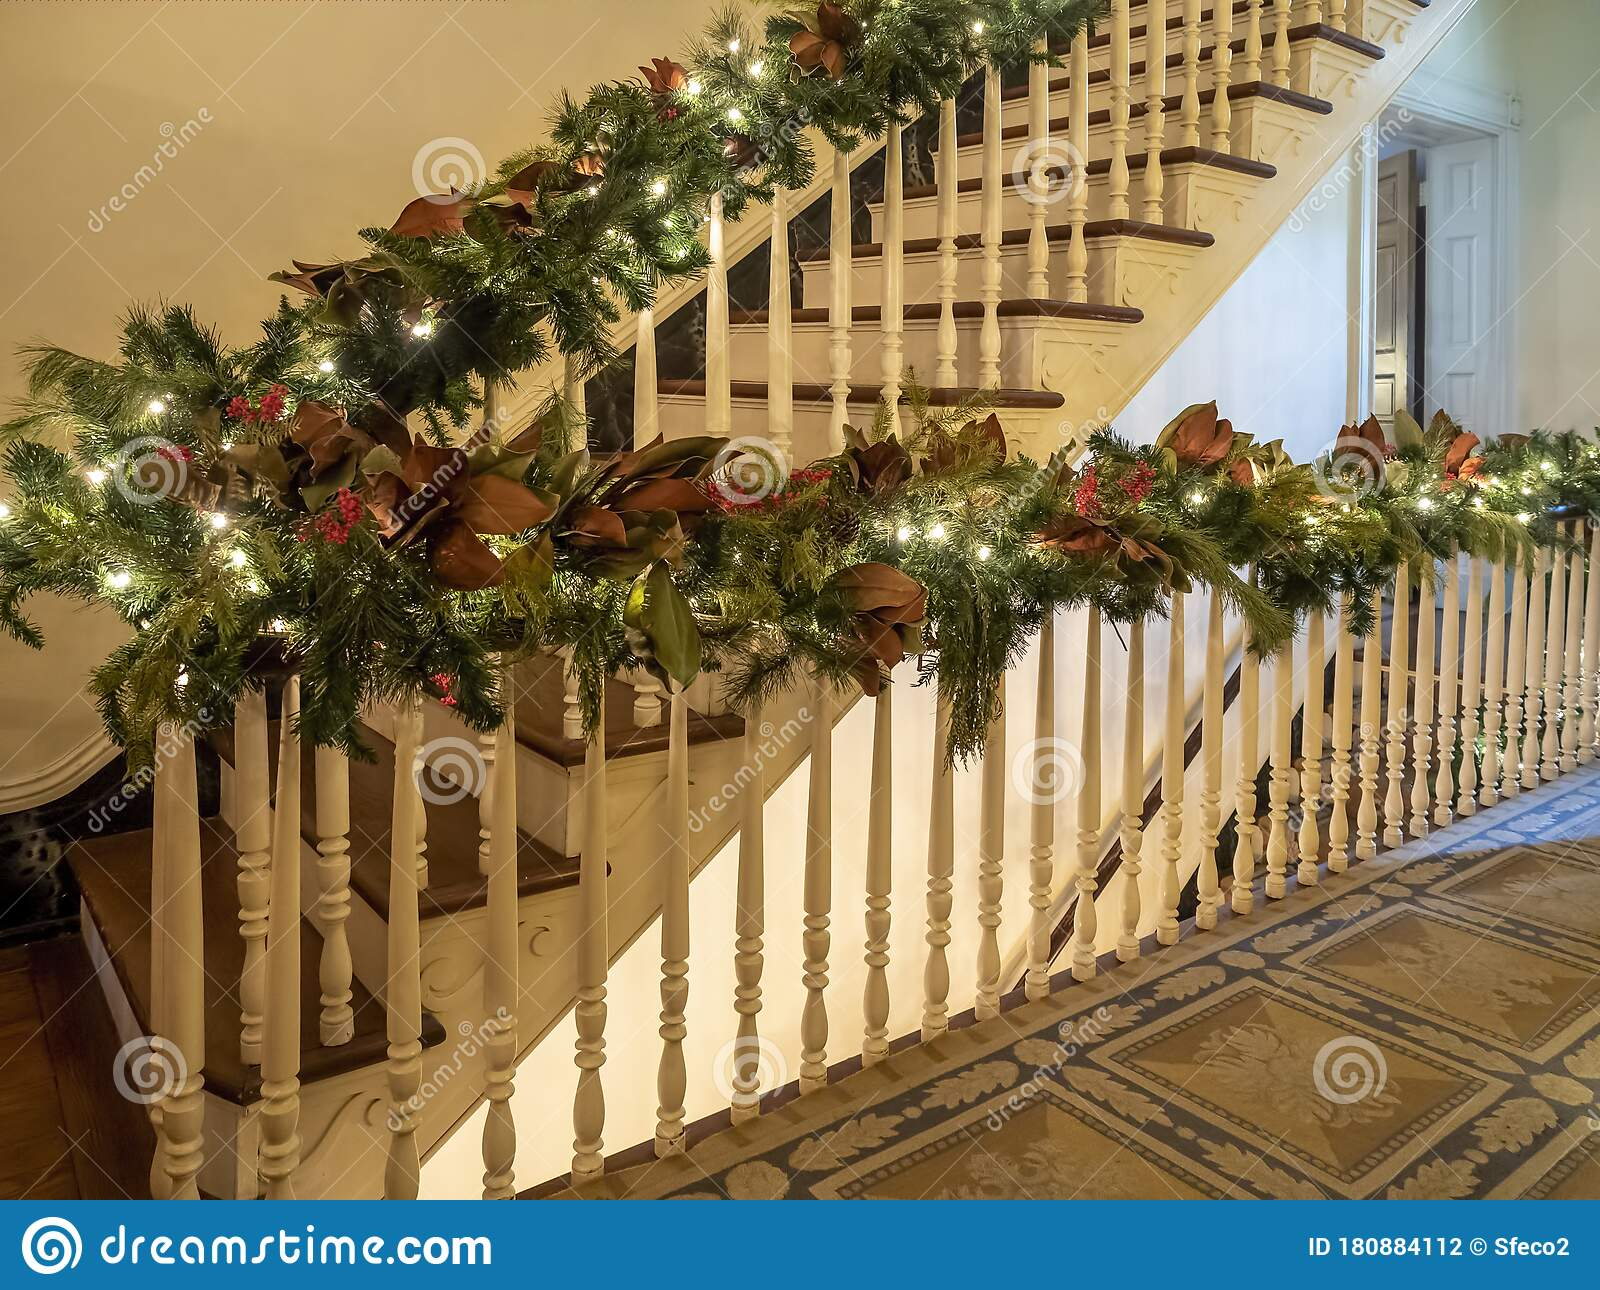 Picture of: Christmas Decorations And Lights On The Railing Stock Photo Image Of Home December 180884112